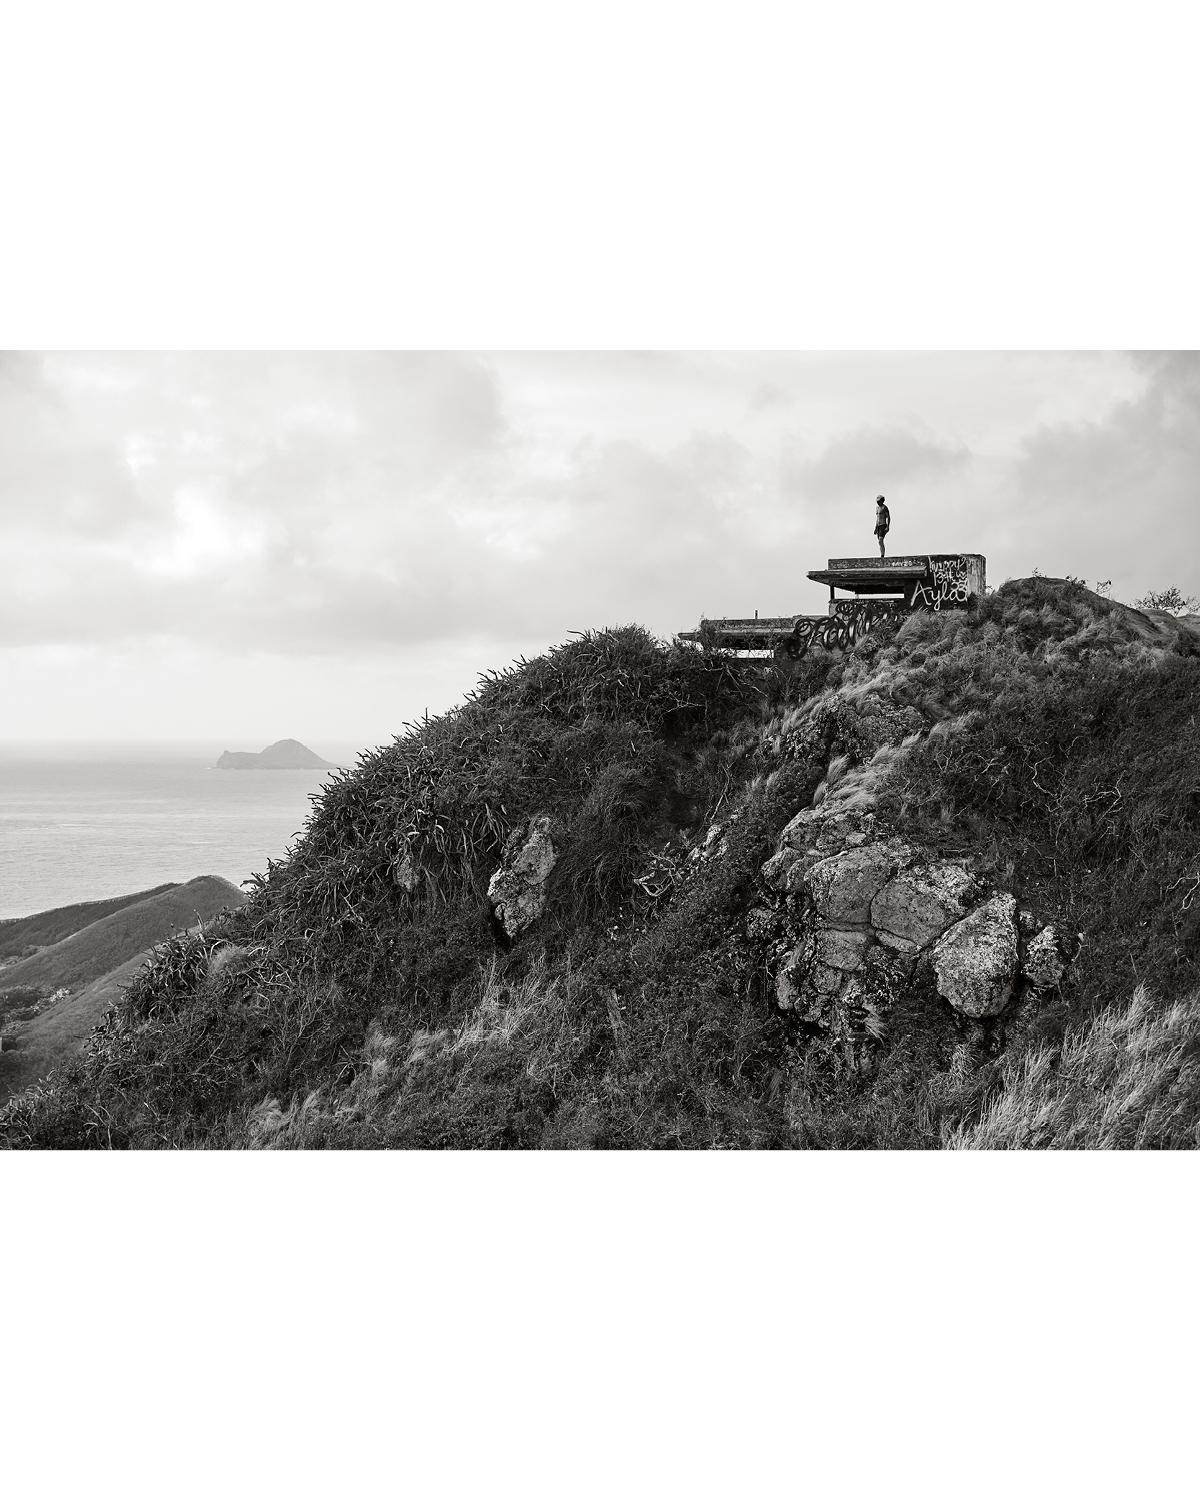 A MORNING RUNNER ON TOP OF PILLBOX TWO